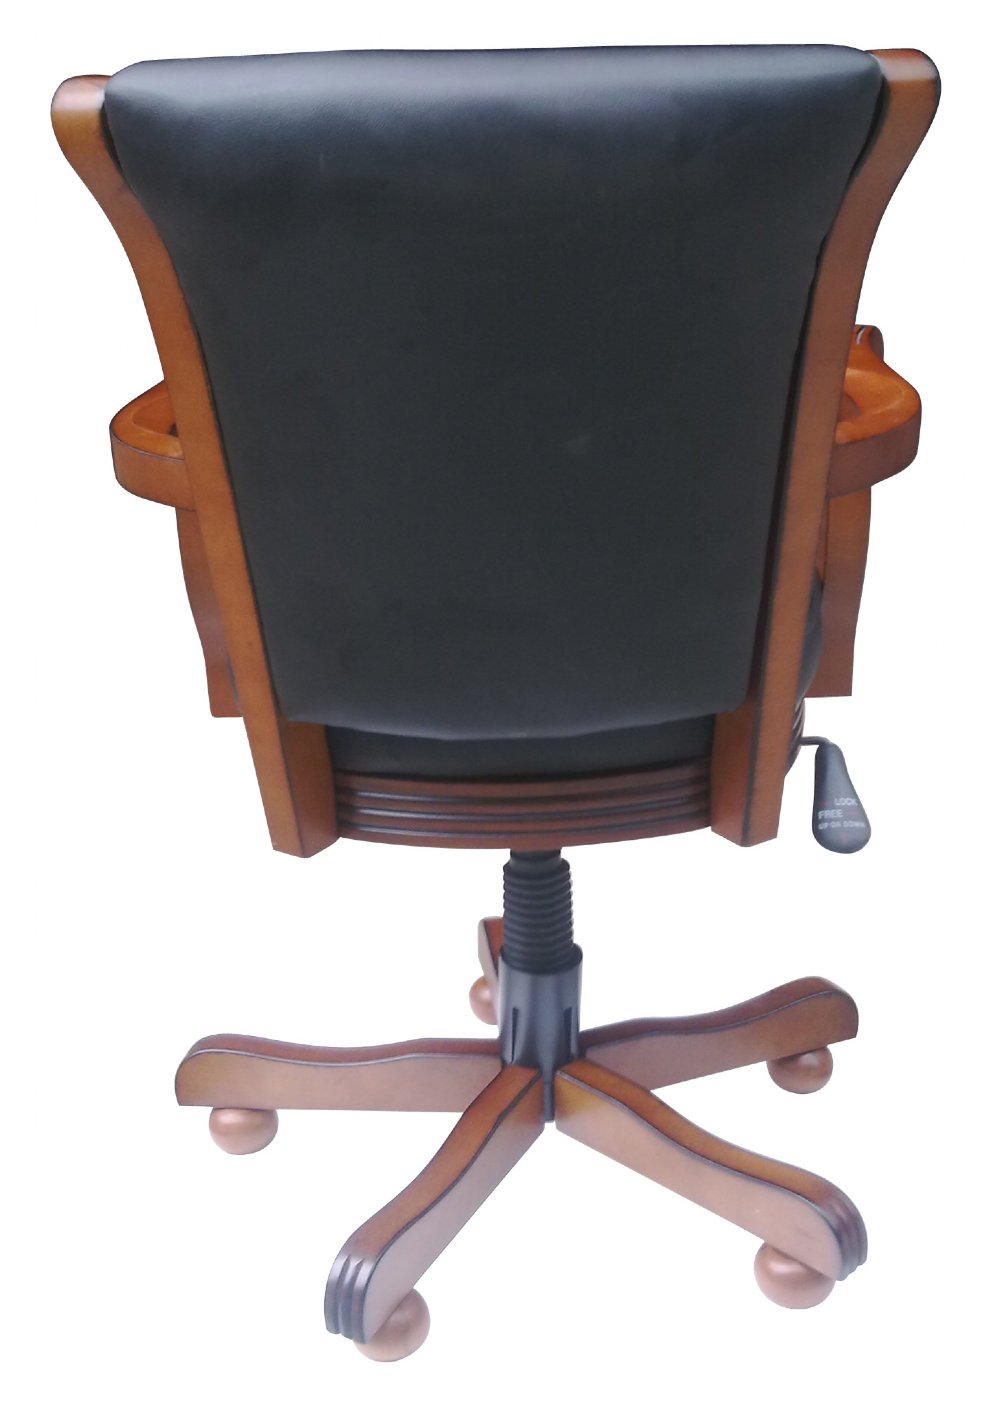 chair conversion convert your caster chairs into non rolling. Black Bedroom Furniture Sets. Home Design Ideas